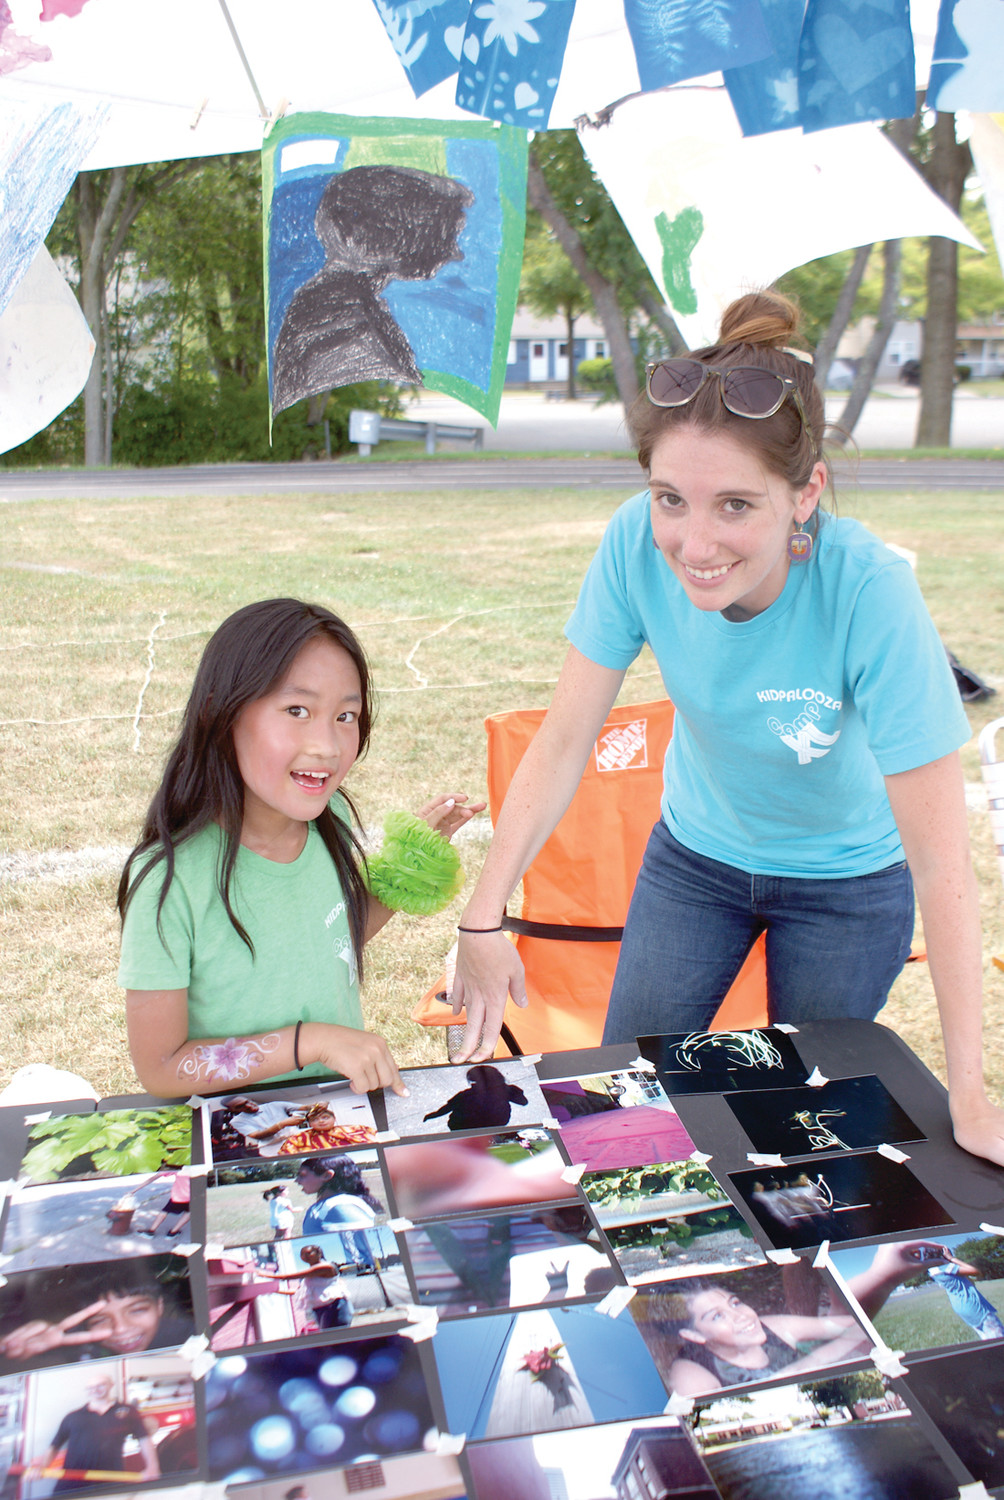 PHOTO GROUP: Amanda Chen, age 9, is pictured with her Photography Instructor from Camp XL, Alicia Turbitt. They highlighted photographs and silhouettes by camp members.